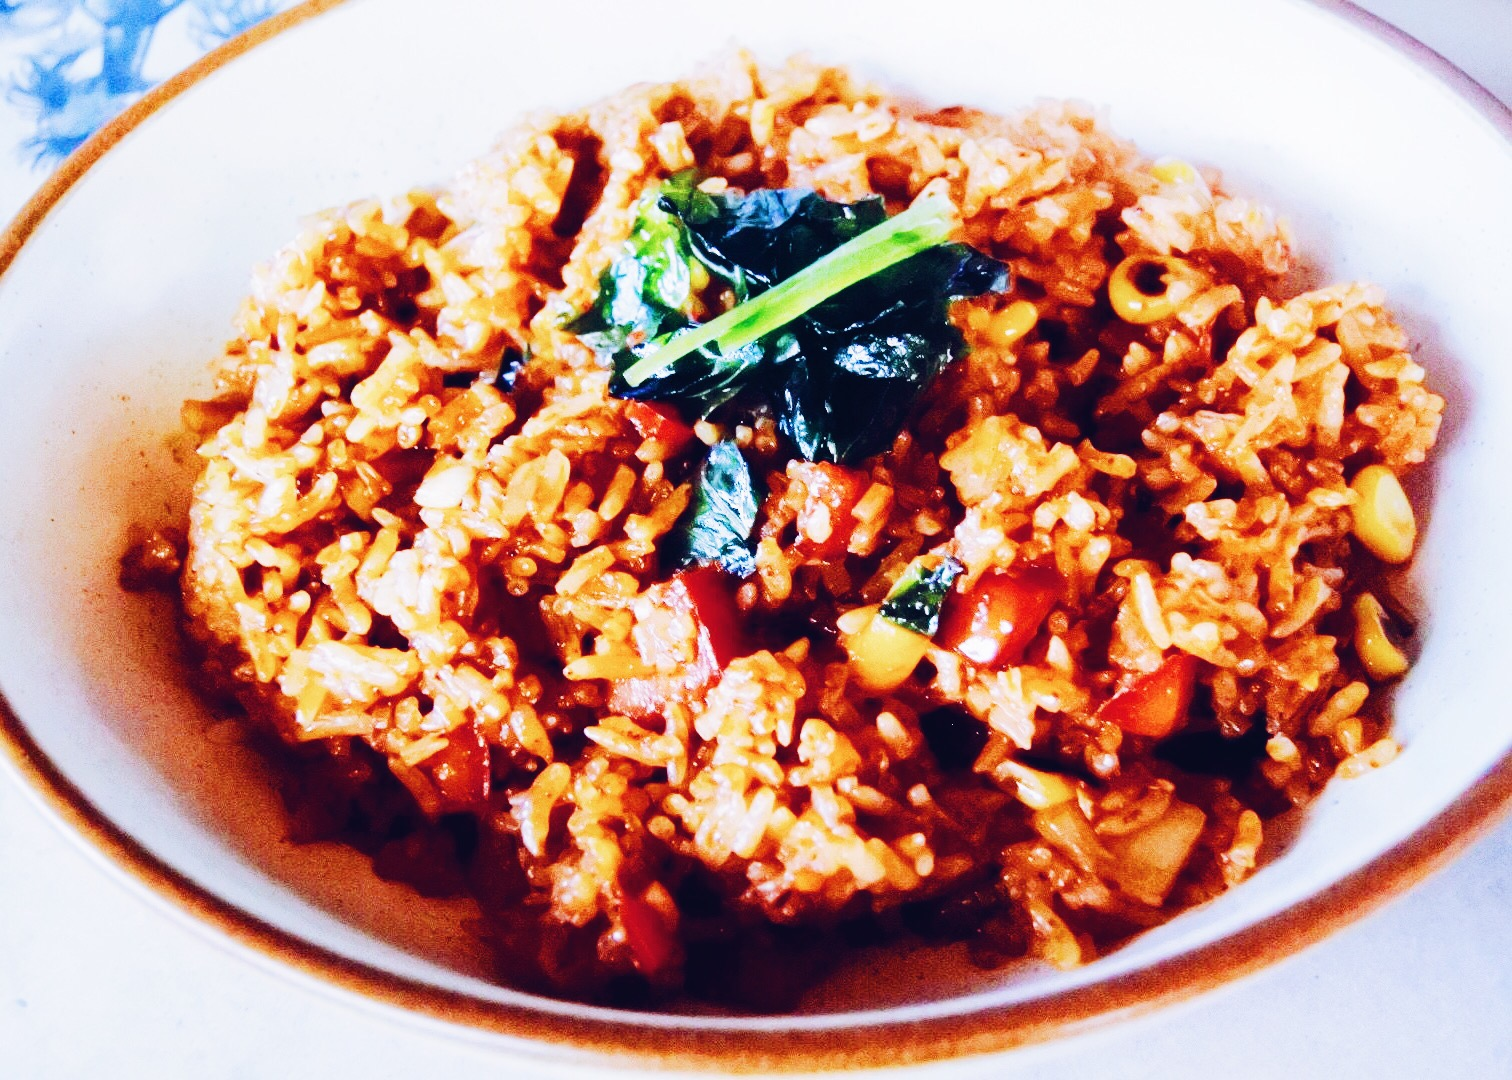 The Thai wok fried rice